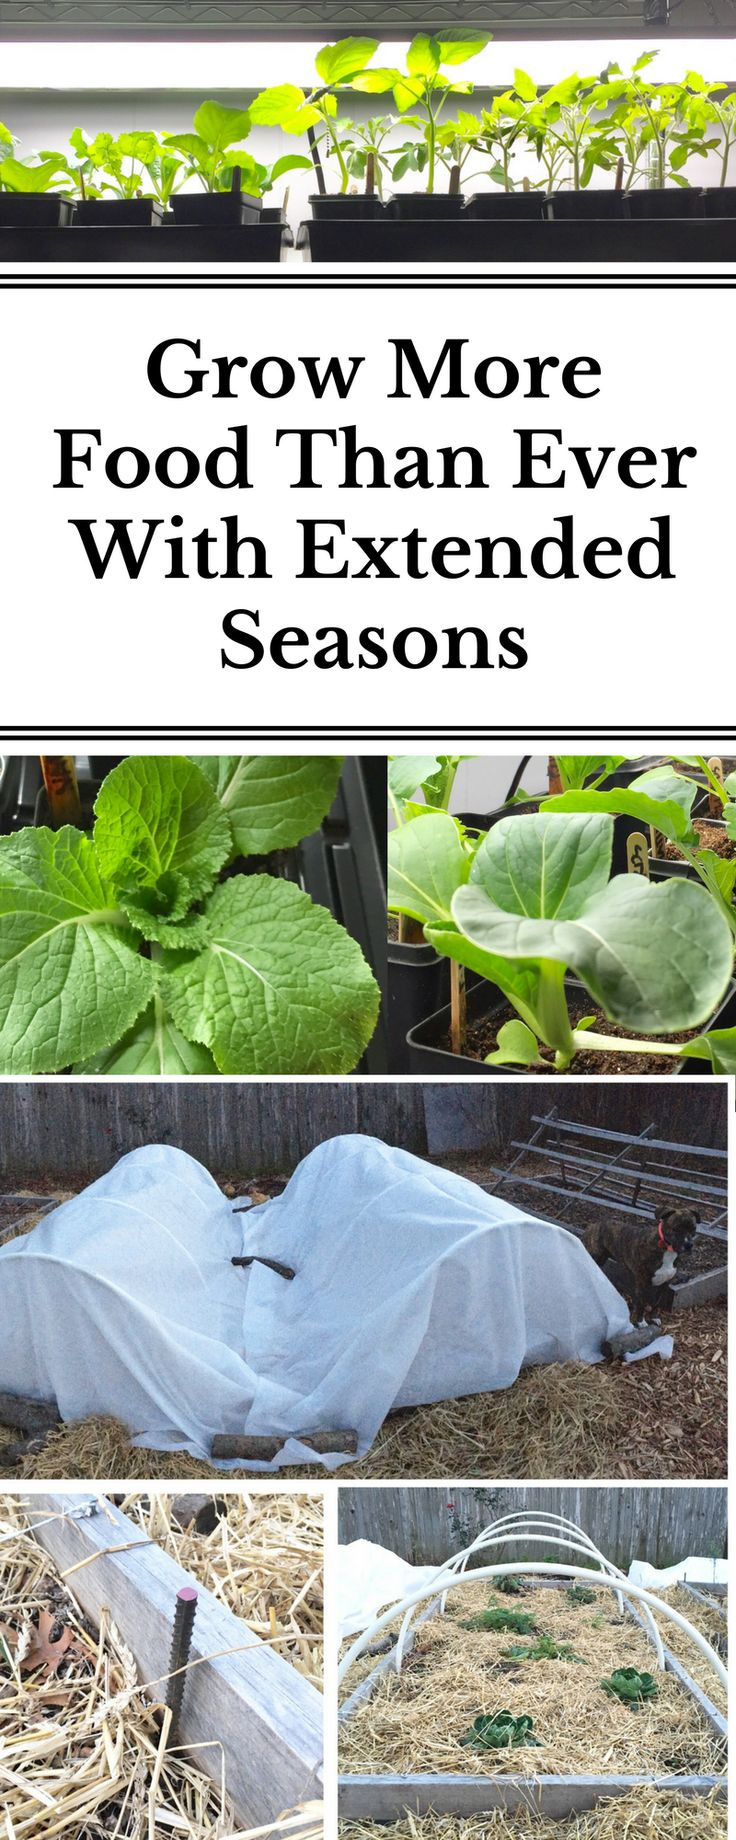 Ready to take your garden to the next level? We did in just two easy steps last winter and it totally transformed our gardening game allowing us to grow more food than ever with extended seasons!